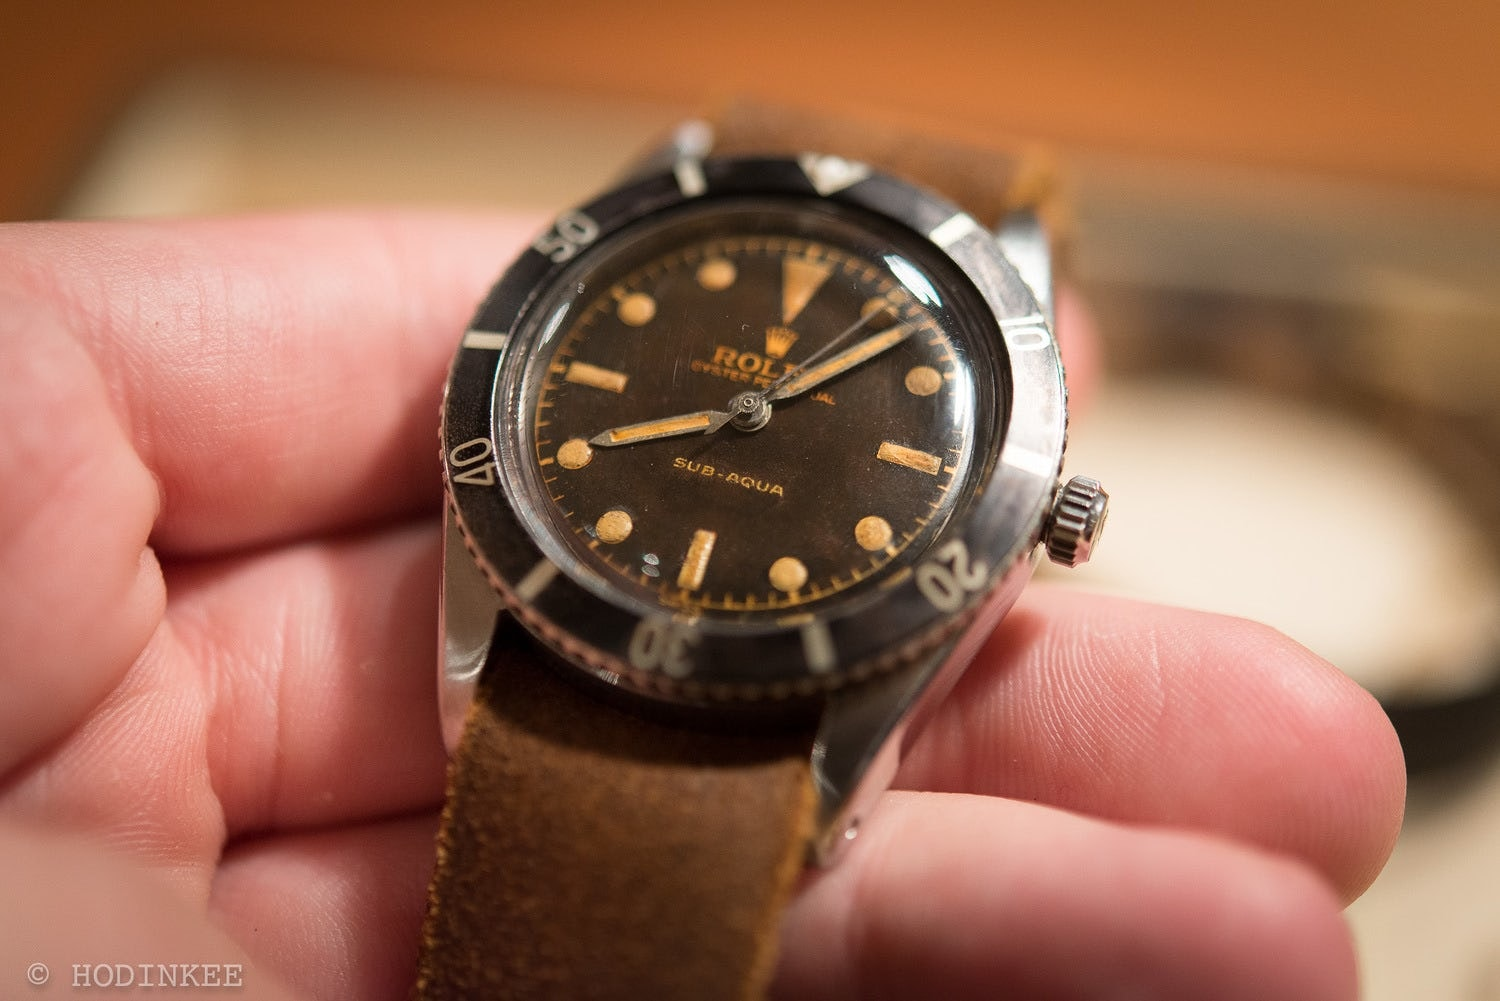 Rolexsubaqua 2.jpg?ixlib=rails 1.1 A Week On The Wrist: The Rolex Sea-Dweller Reference 126600 A Week On The Wrist: The Rolex Sea-Dweller Reference 126600 RolexSubAqua 2